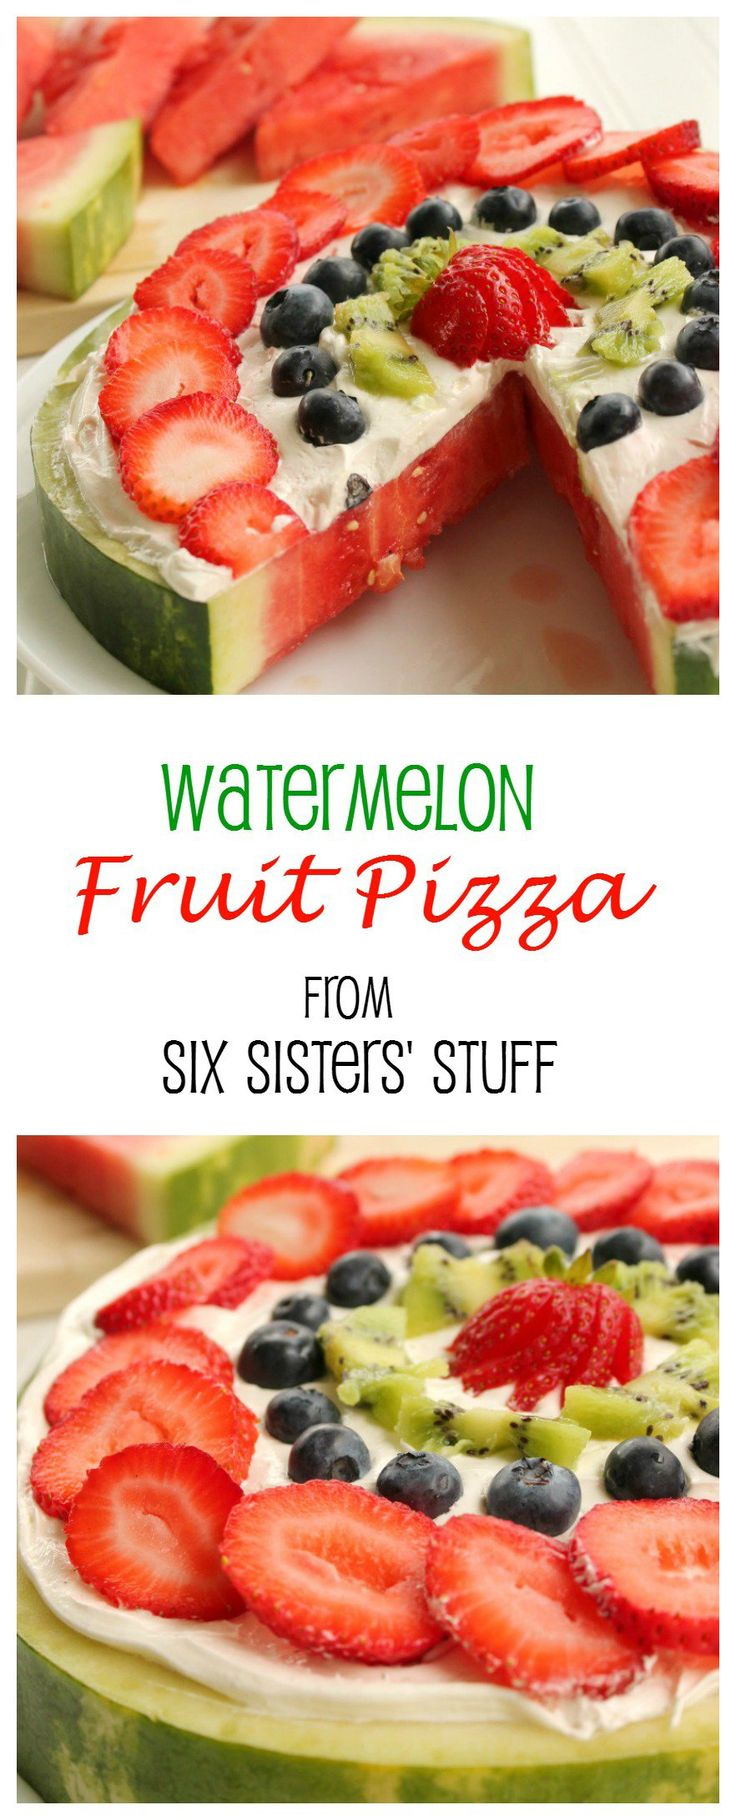 Watermelon Fruit Pizza | Six Sisters' Stuff